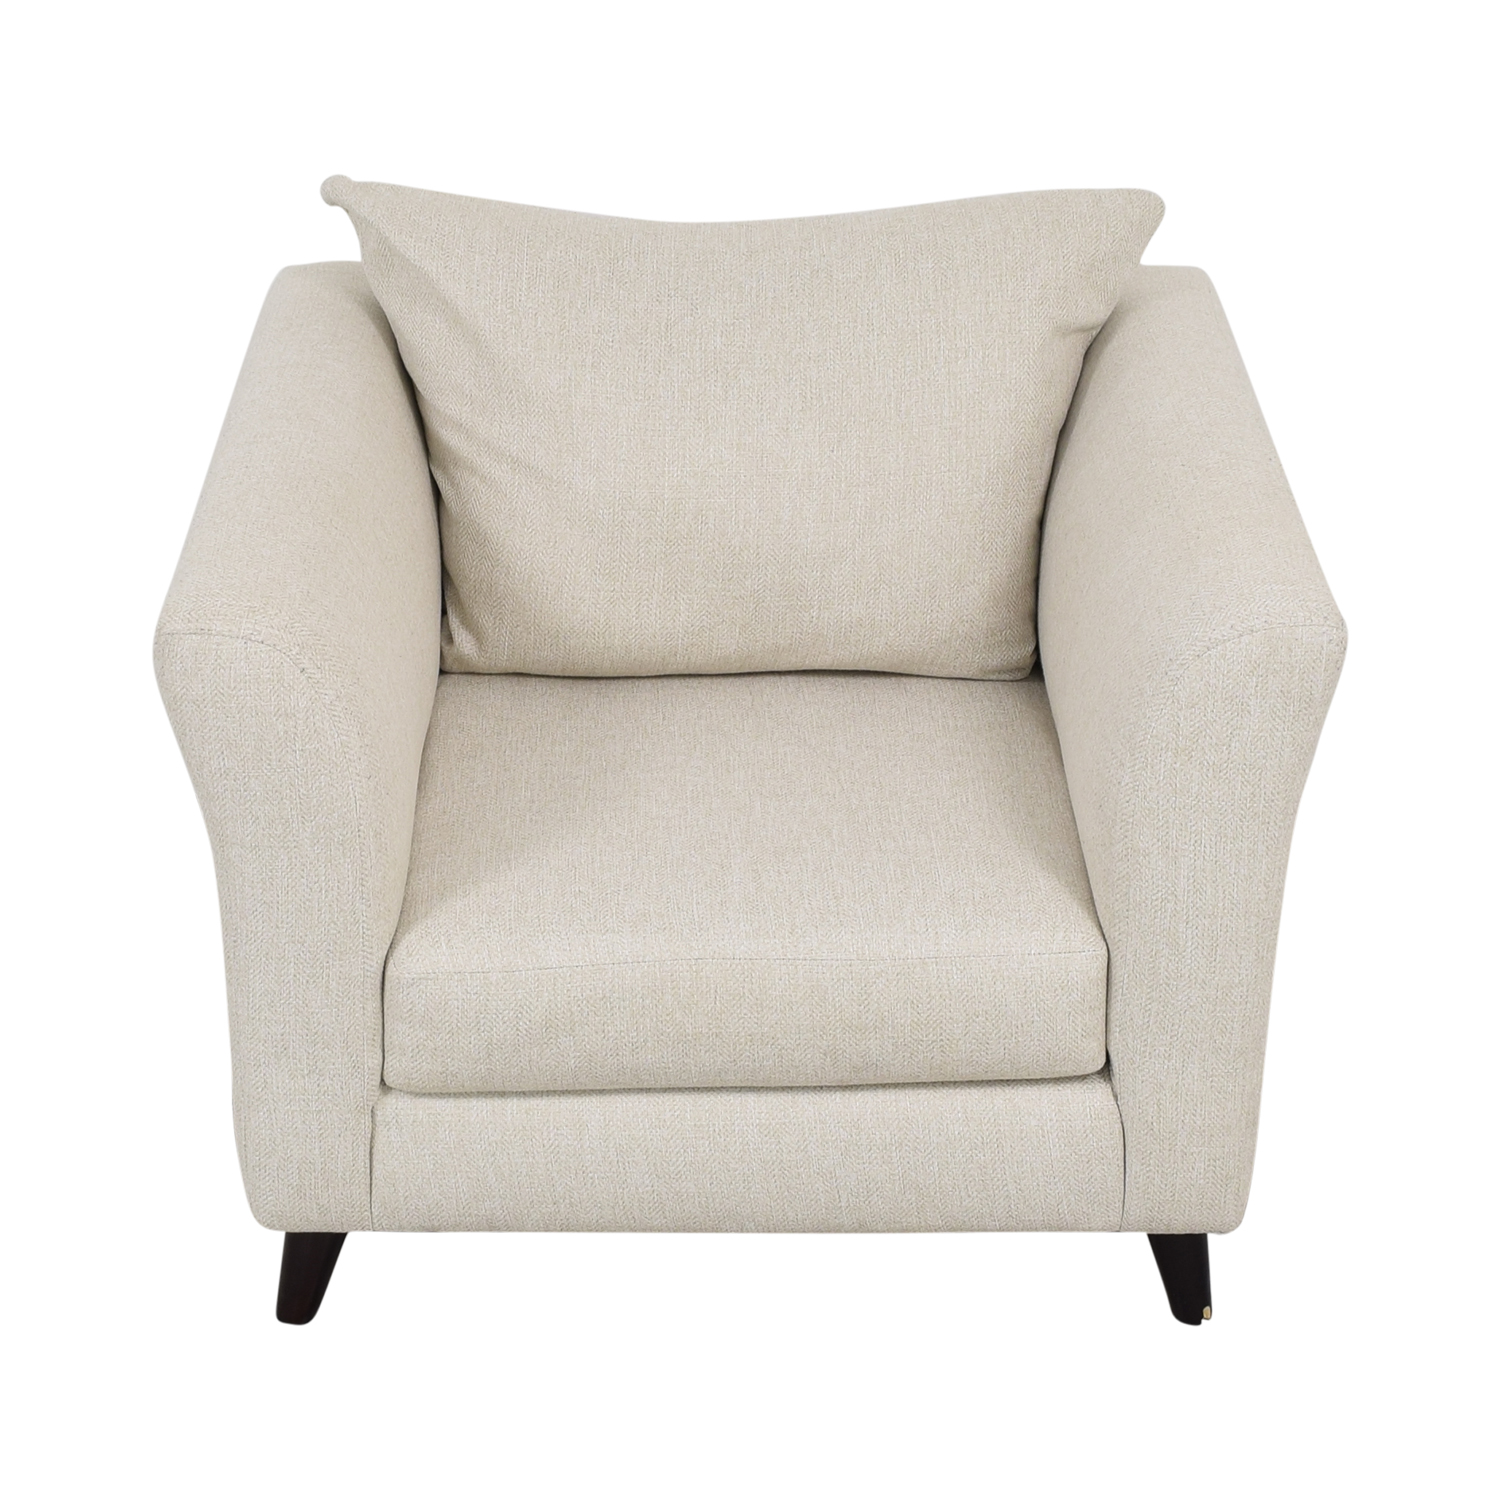 Raymour & Flanigan Raymour & Flanigan Accent Chair white